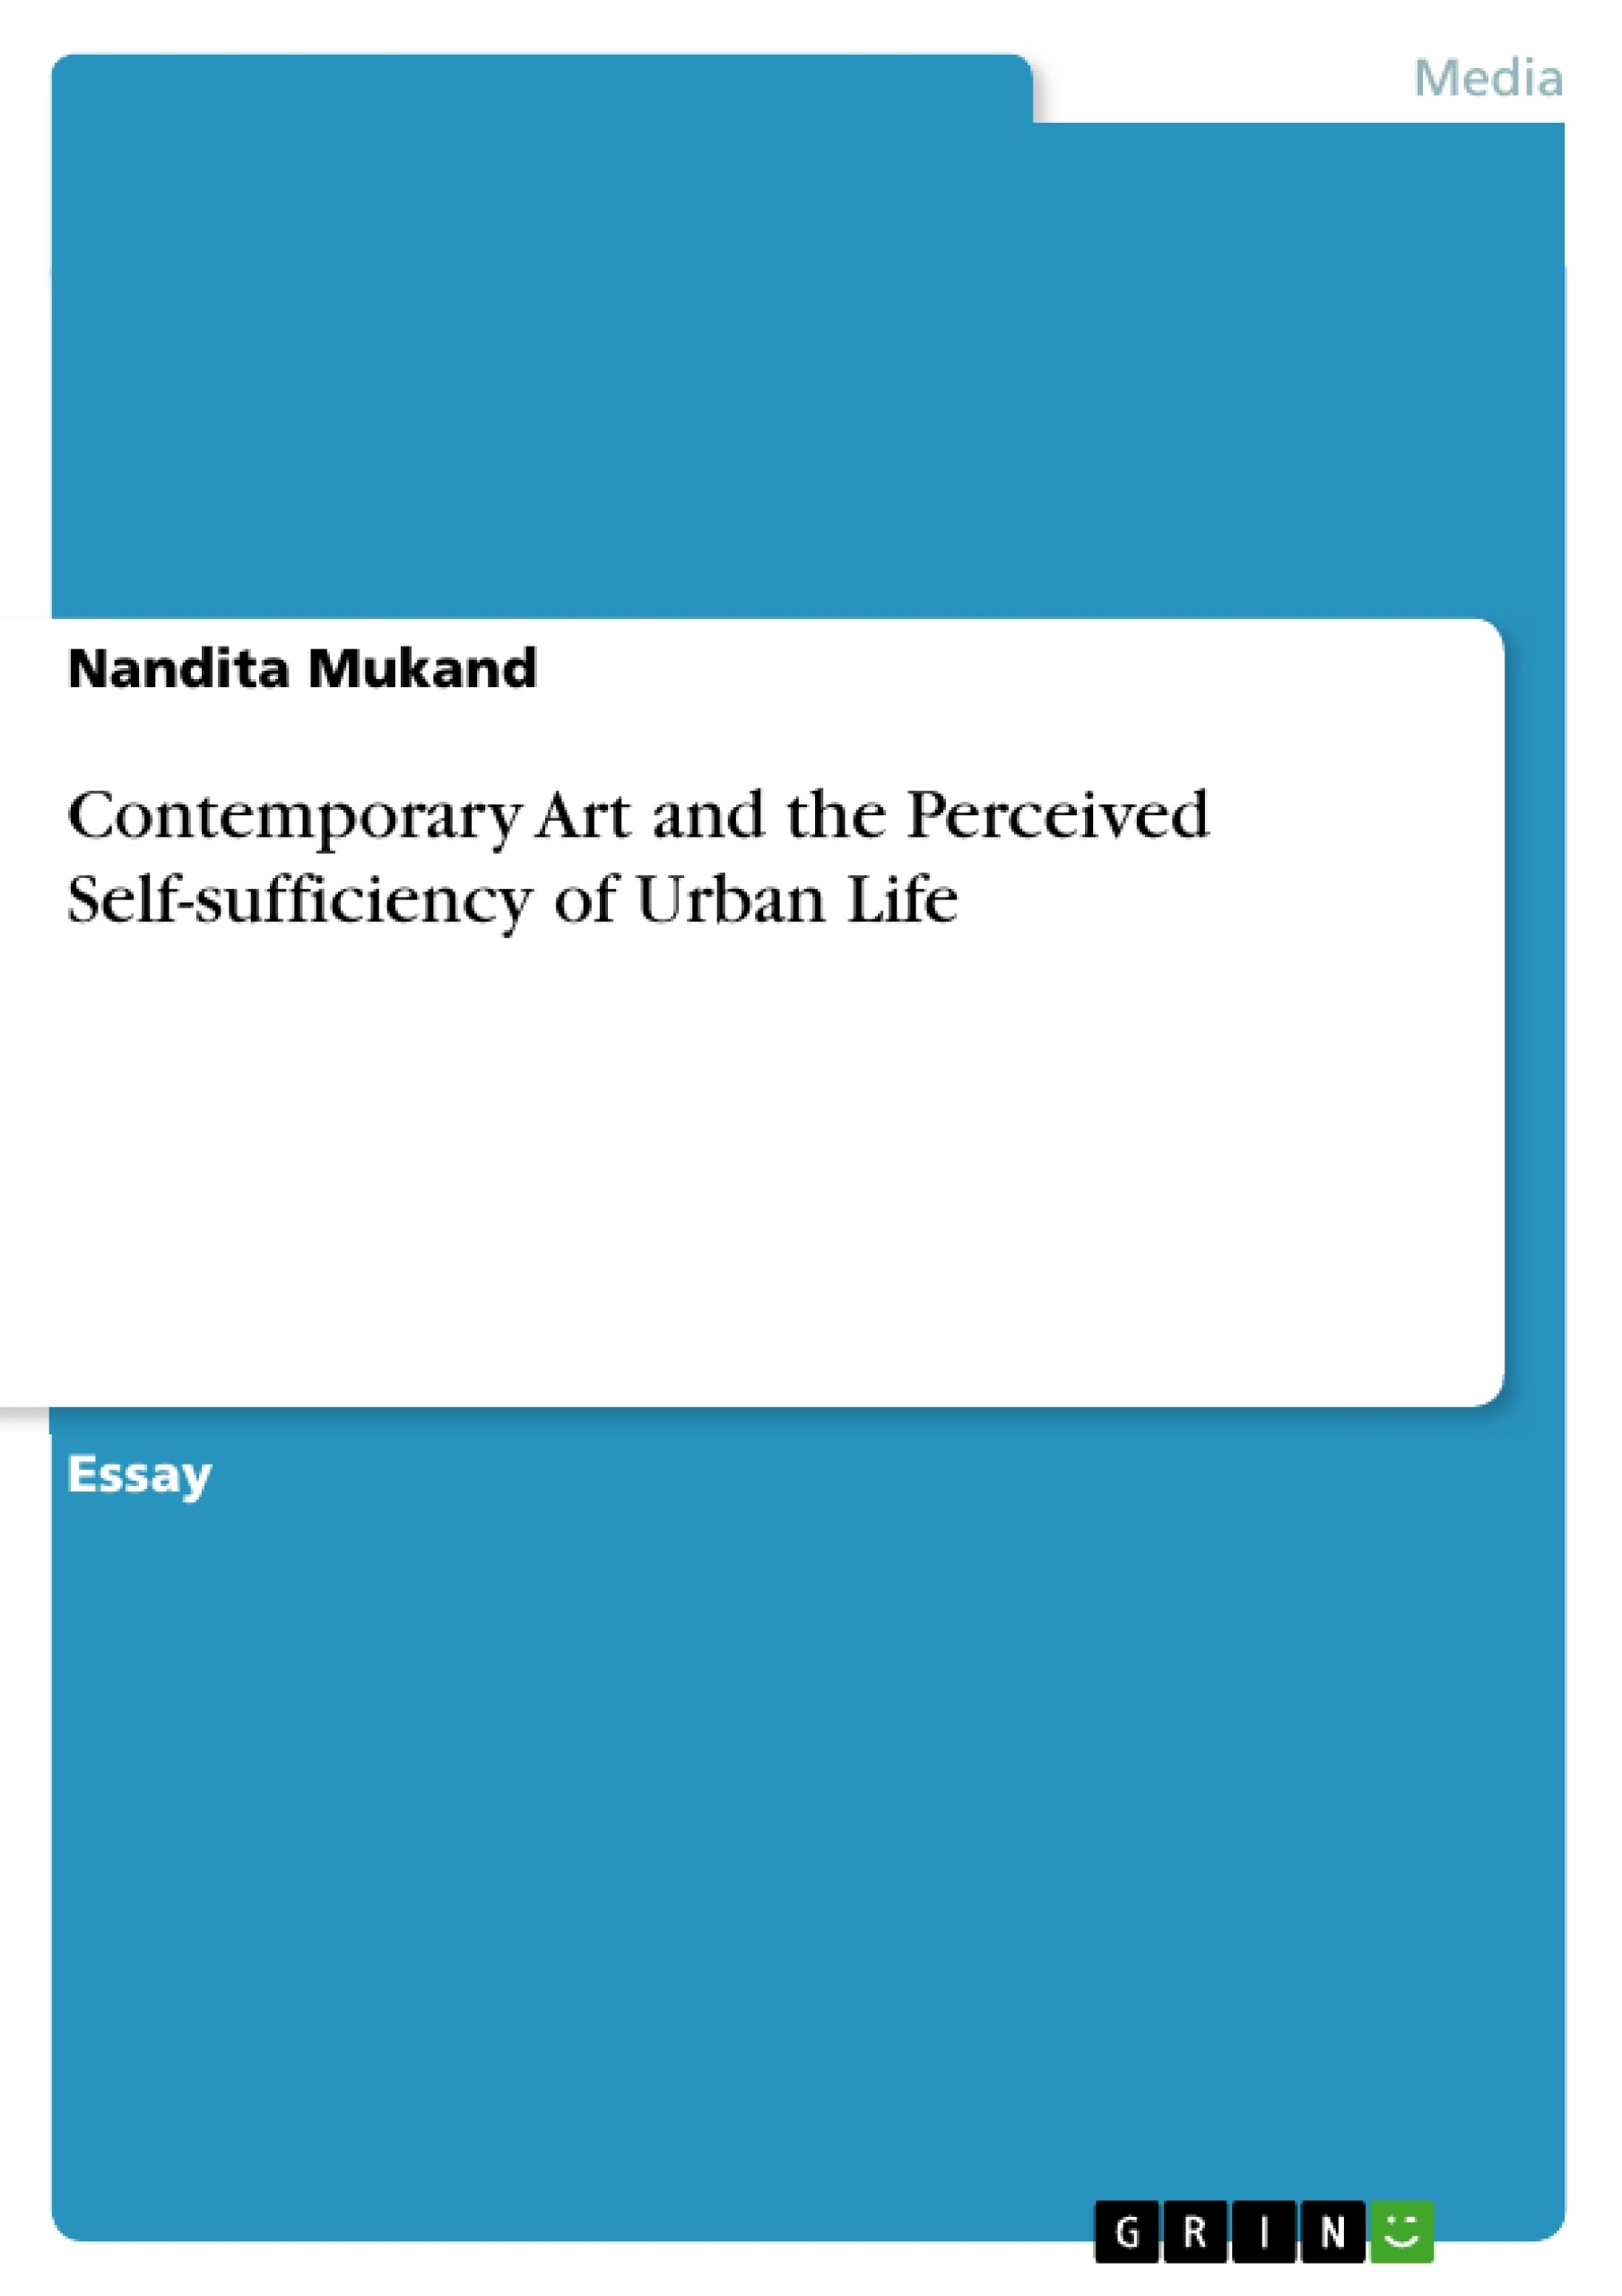 Title: Contemporary Art and the Perceived Self-sufficiency of Urban Life